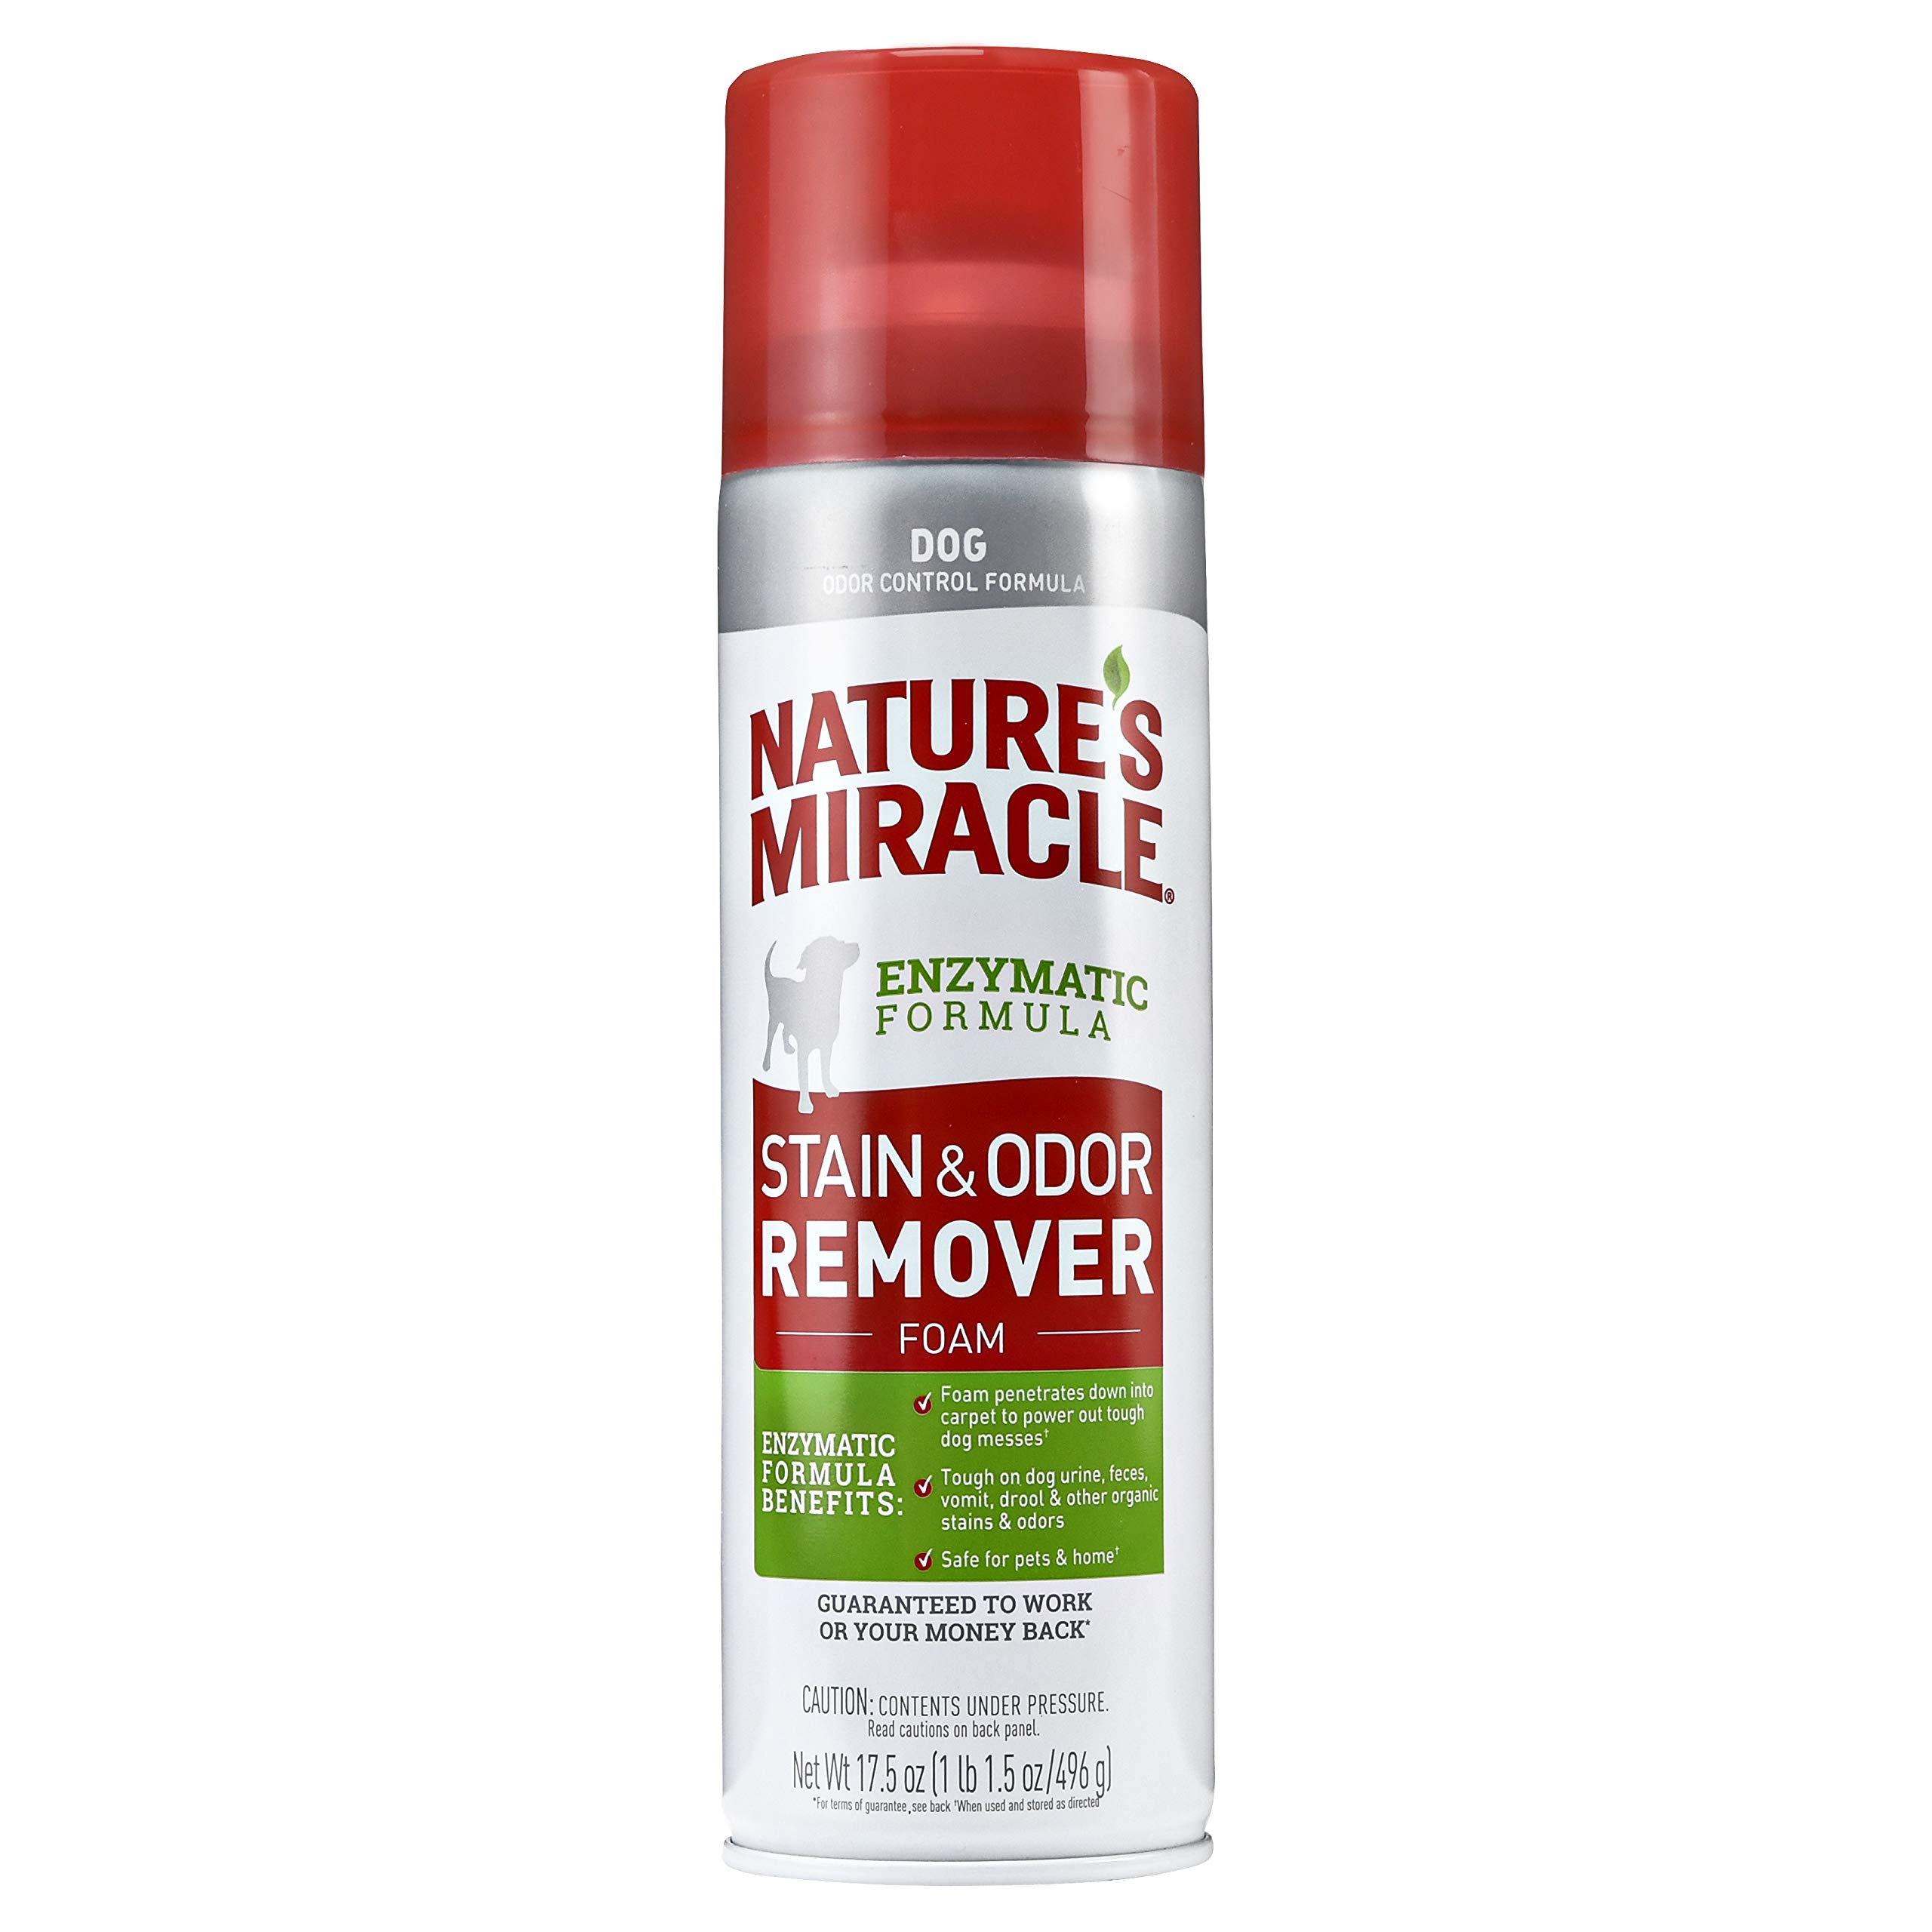 Nature's Miracle Dog Aerosol Foaming, 17.5 oz by Nature's Miracle (Image #1)